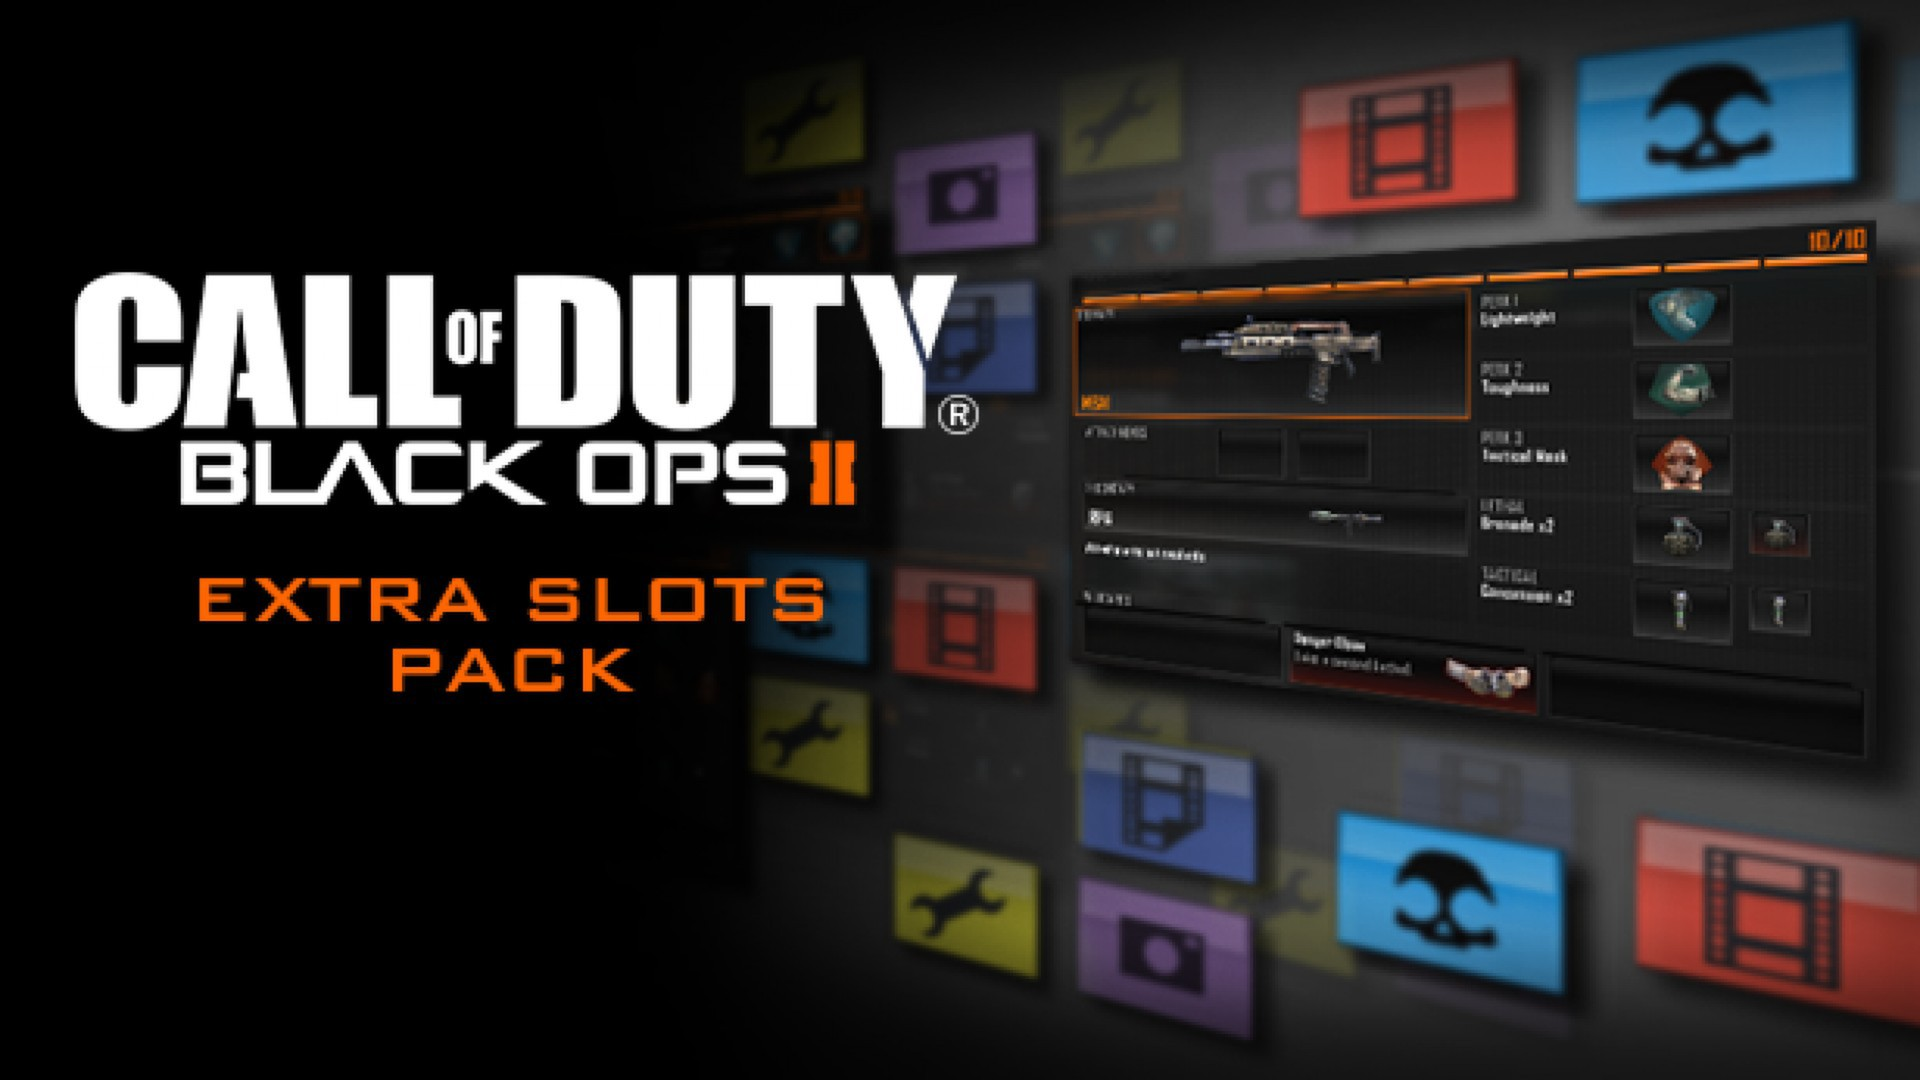 Call Of Duty Black Ops Ii Extra Slots Pack On Steam